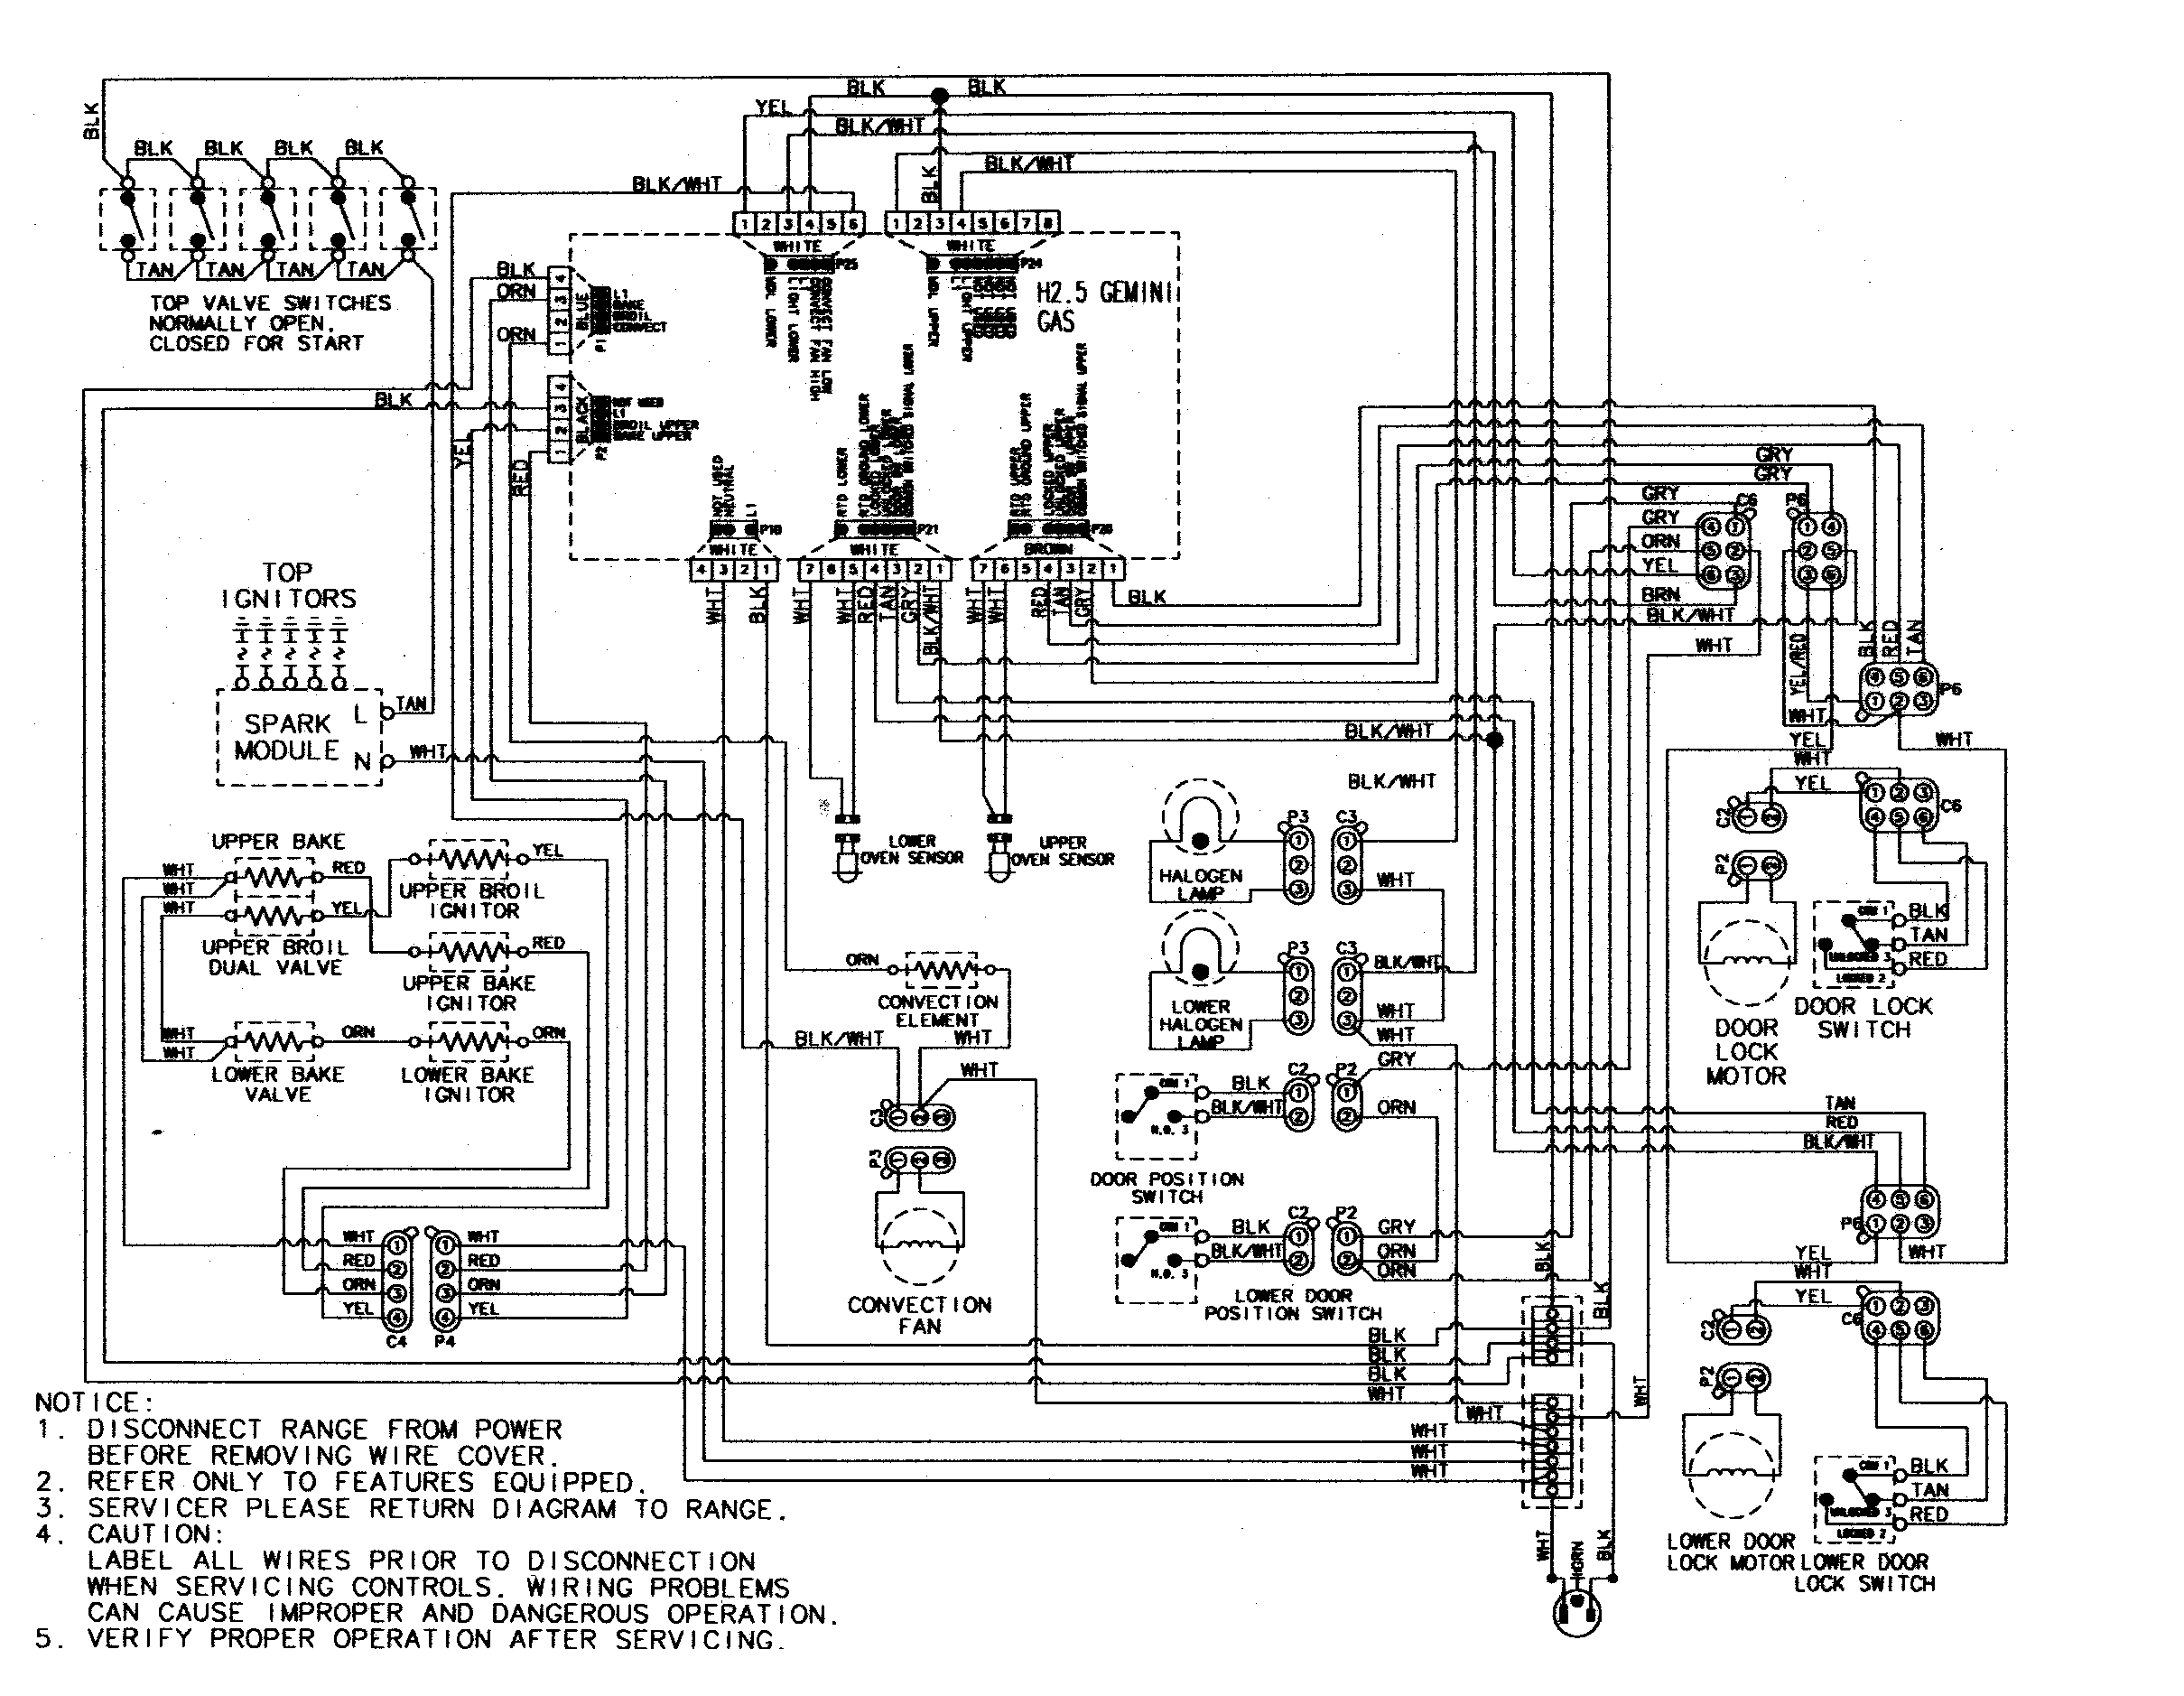 Wiring Diagram Ge Side By Side Refrigerators – The Wiring Diagram ...